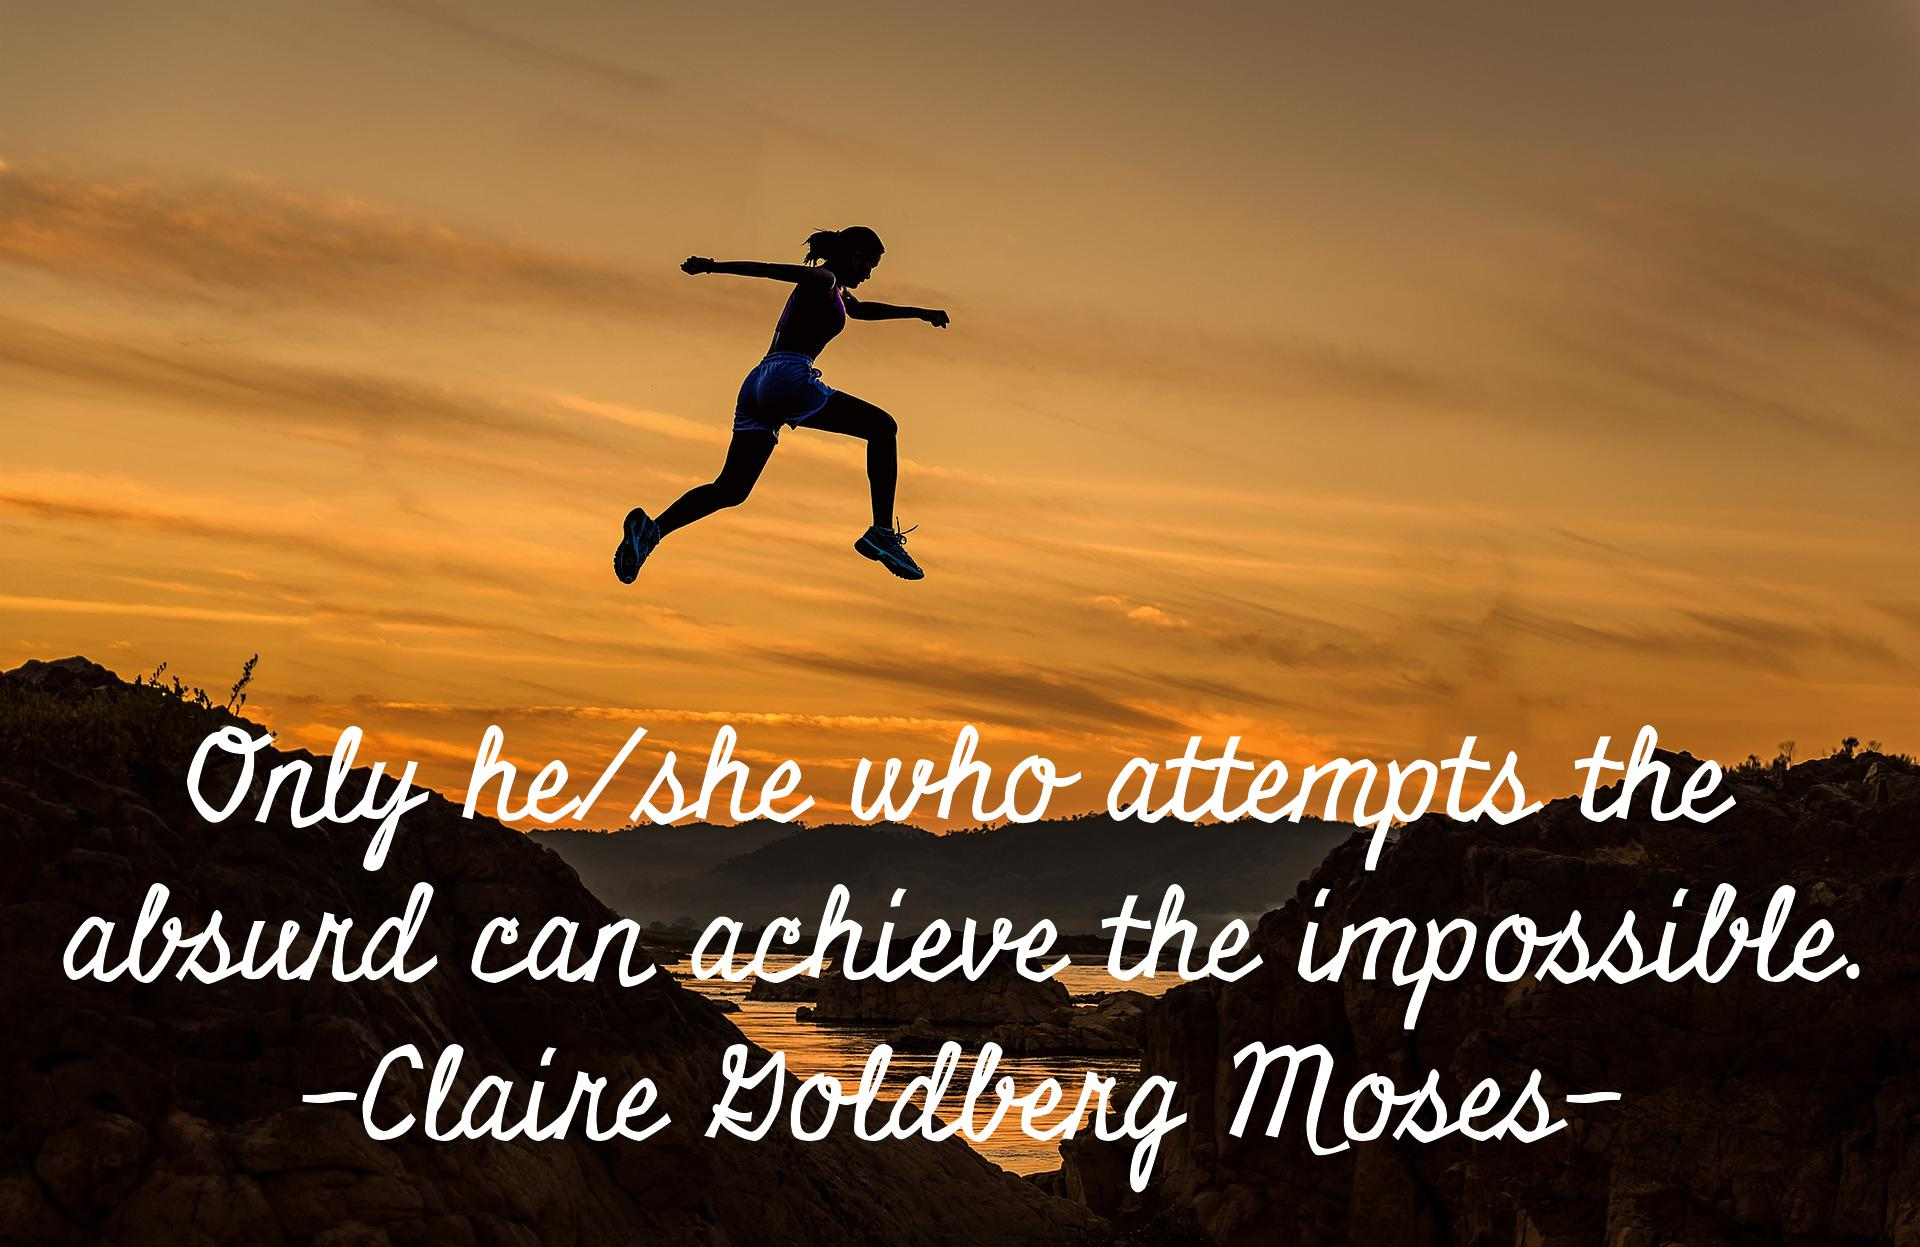 Only he/she who attempts the absurd can achieve the impossible. Claire Goldberg Moses. [1920×1247]